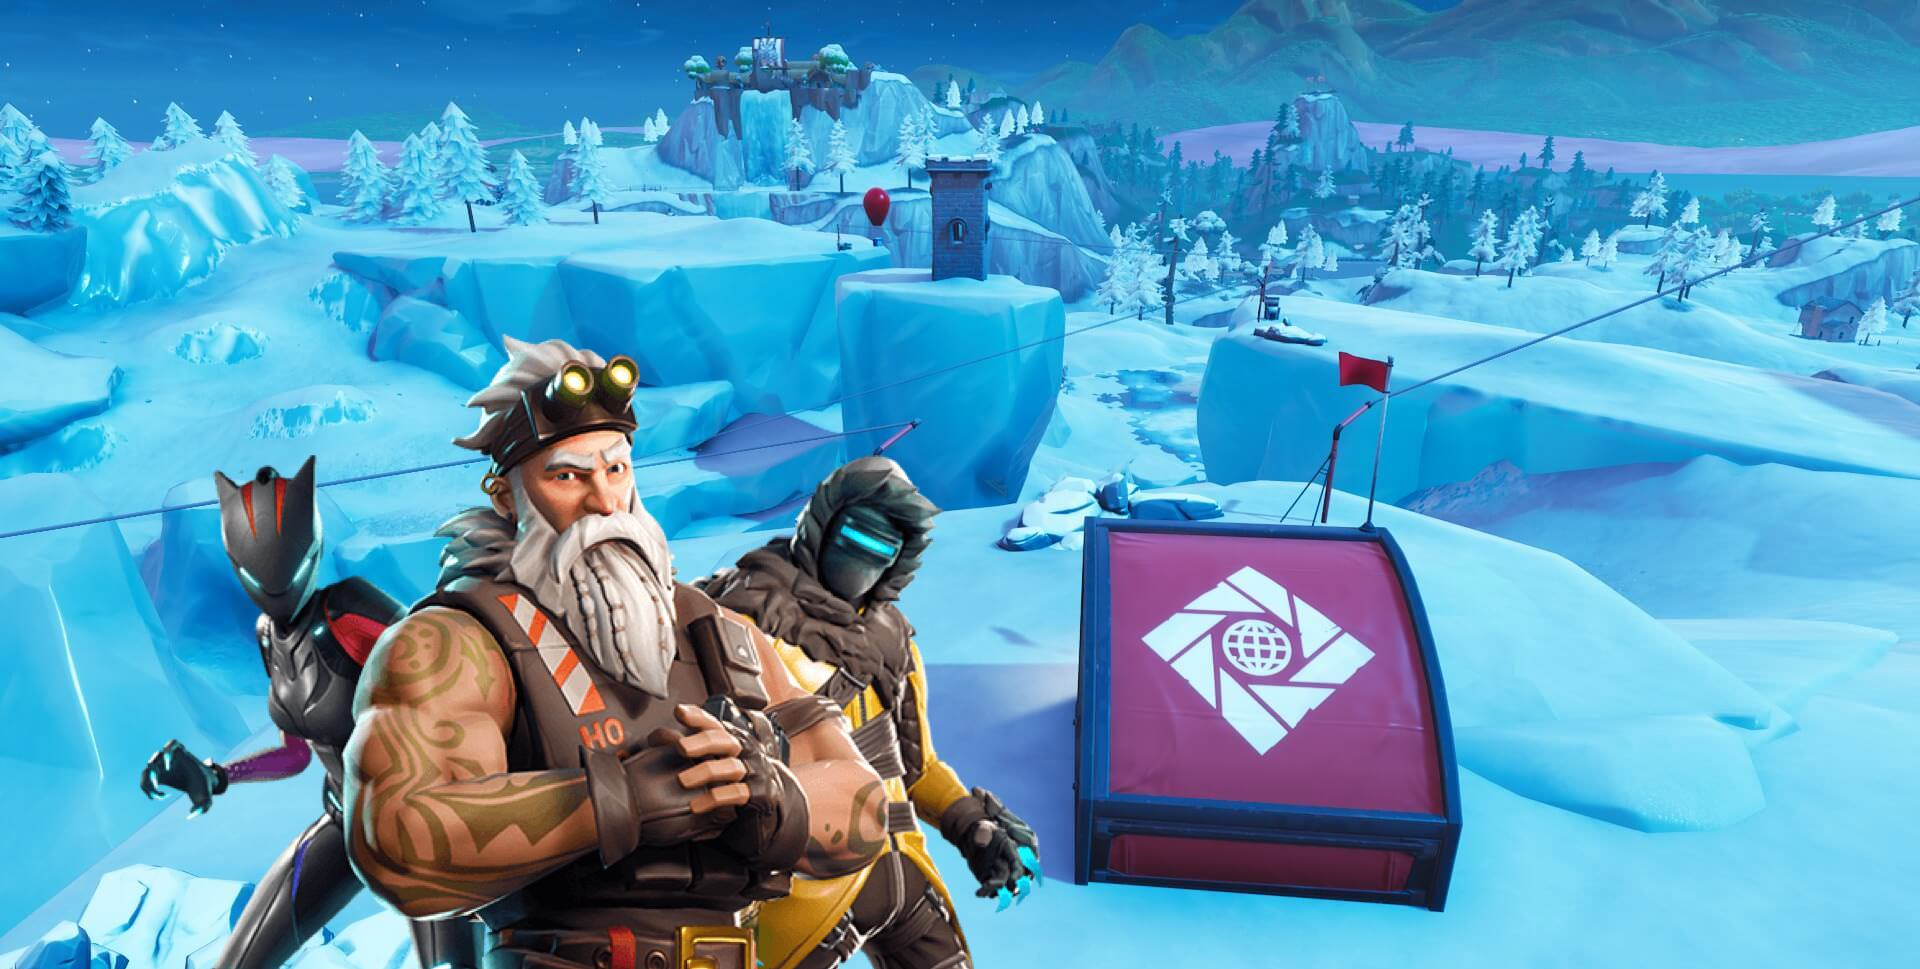 Fortnite' Expedition Outpost Locations: Where to Get the